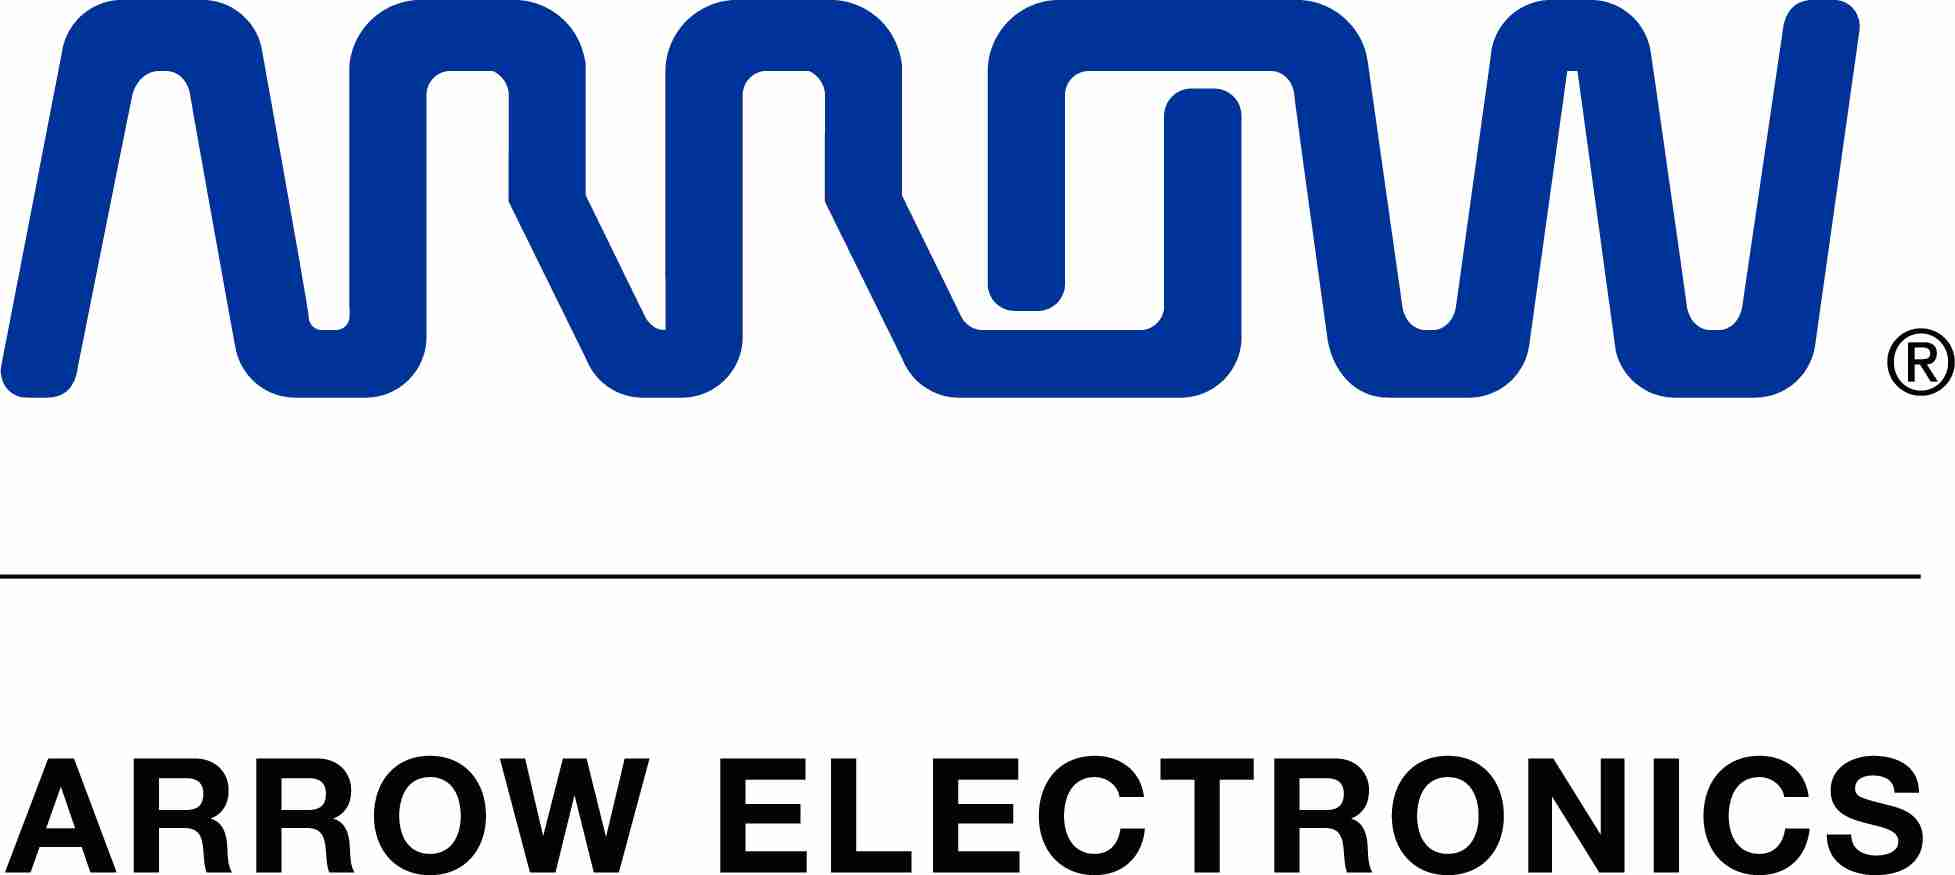 arrow electronics Overview arrow electronics is a global provider of products, services and solutions to industrial and commercial users of electronic components and enterprise computing solutions, with 2016 sales of $238 billion arrow serves as a supply channel partner for over 125,000 original equipment manufacturers, contract.